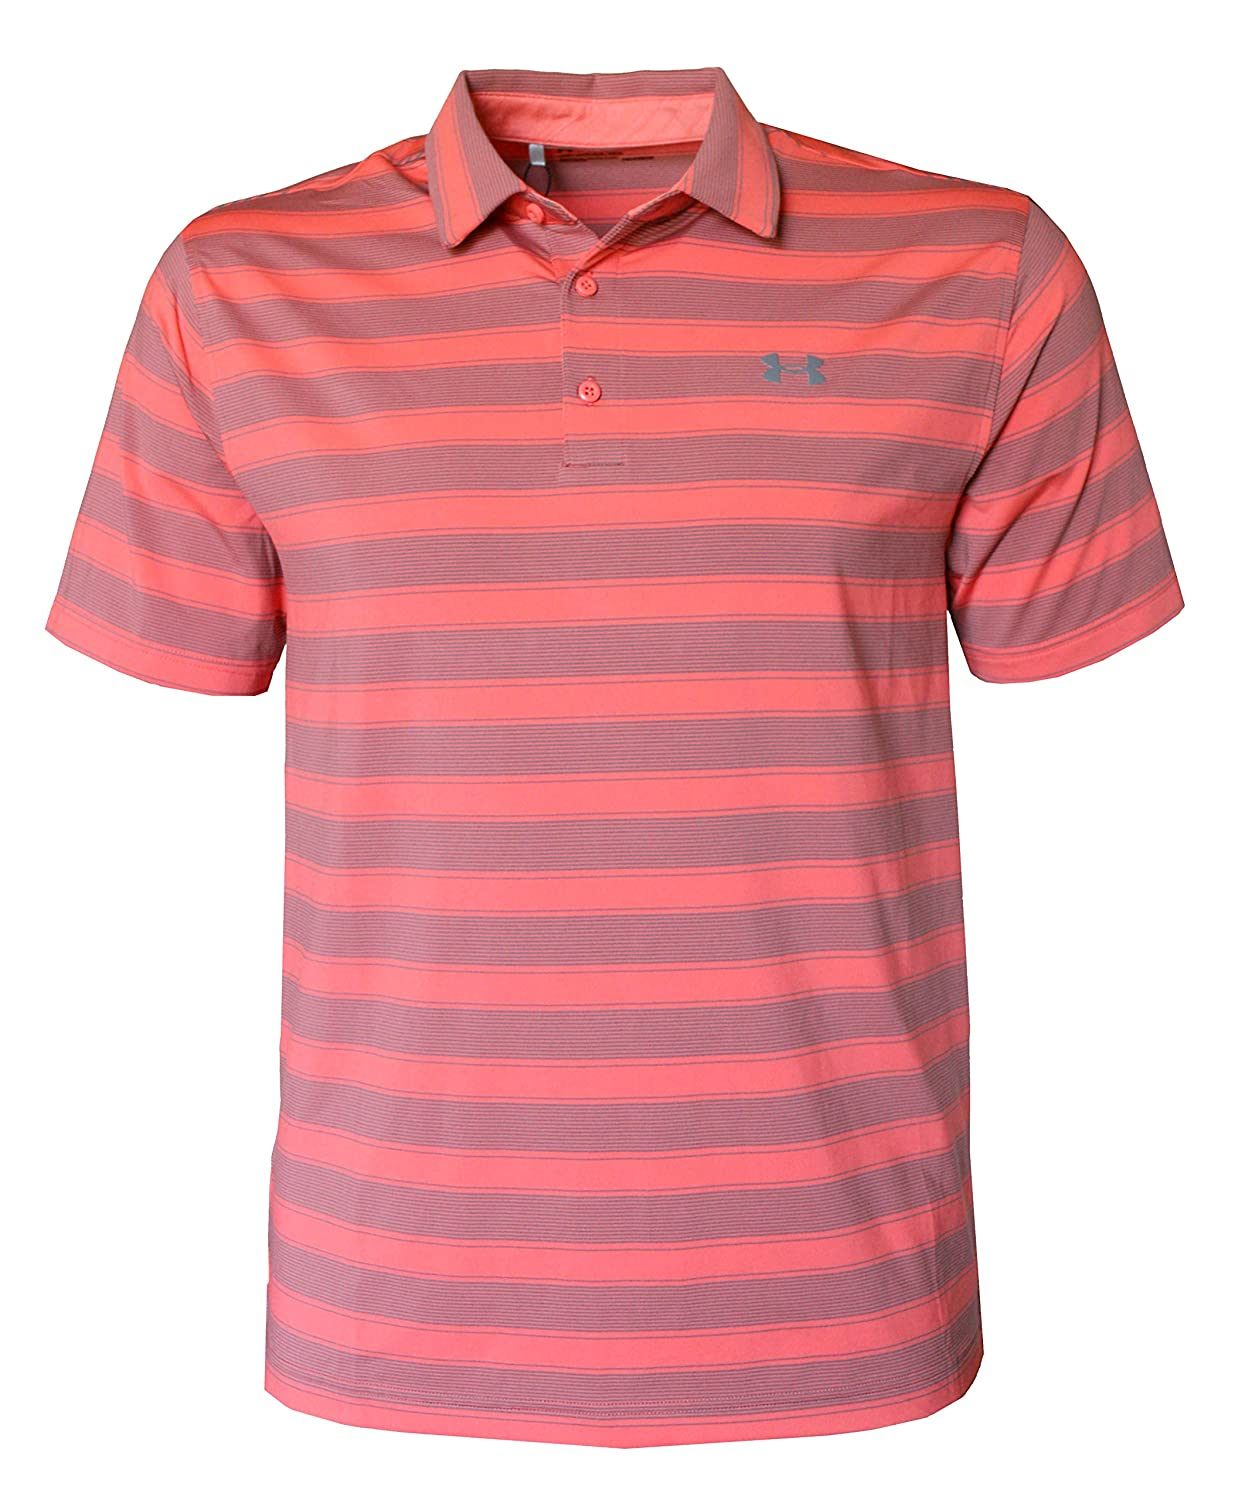 0aa02e91c Amazon.com: Under Armour Men's Performance Golf Polo Shirt Striped Top (M):  Clothing